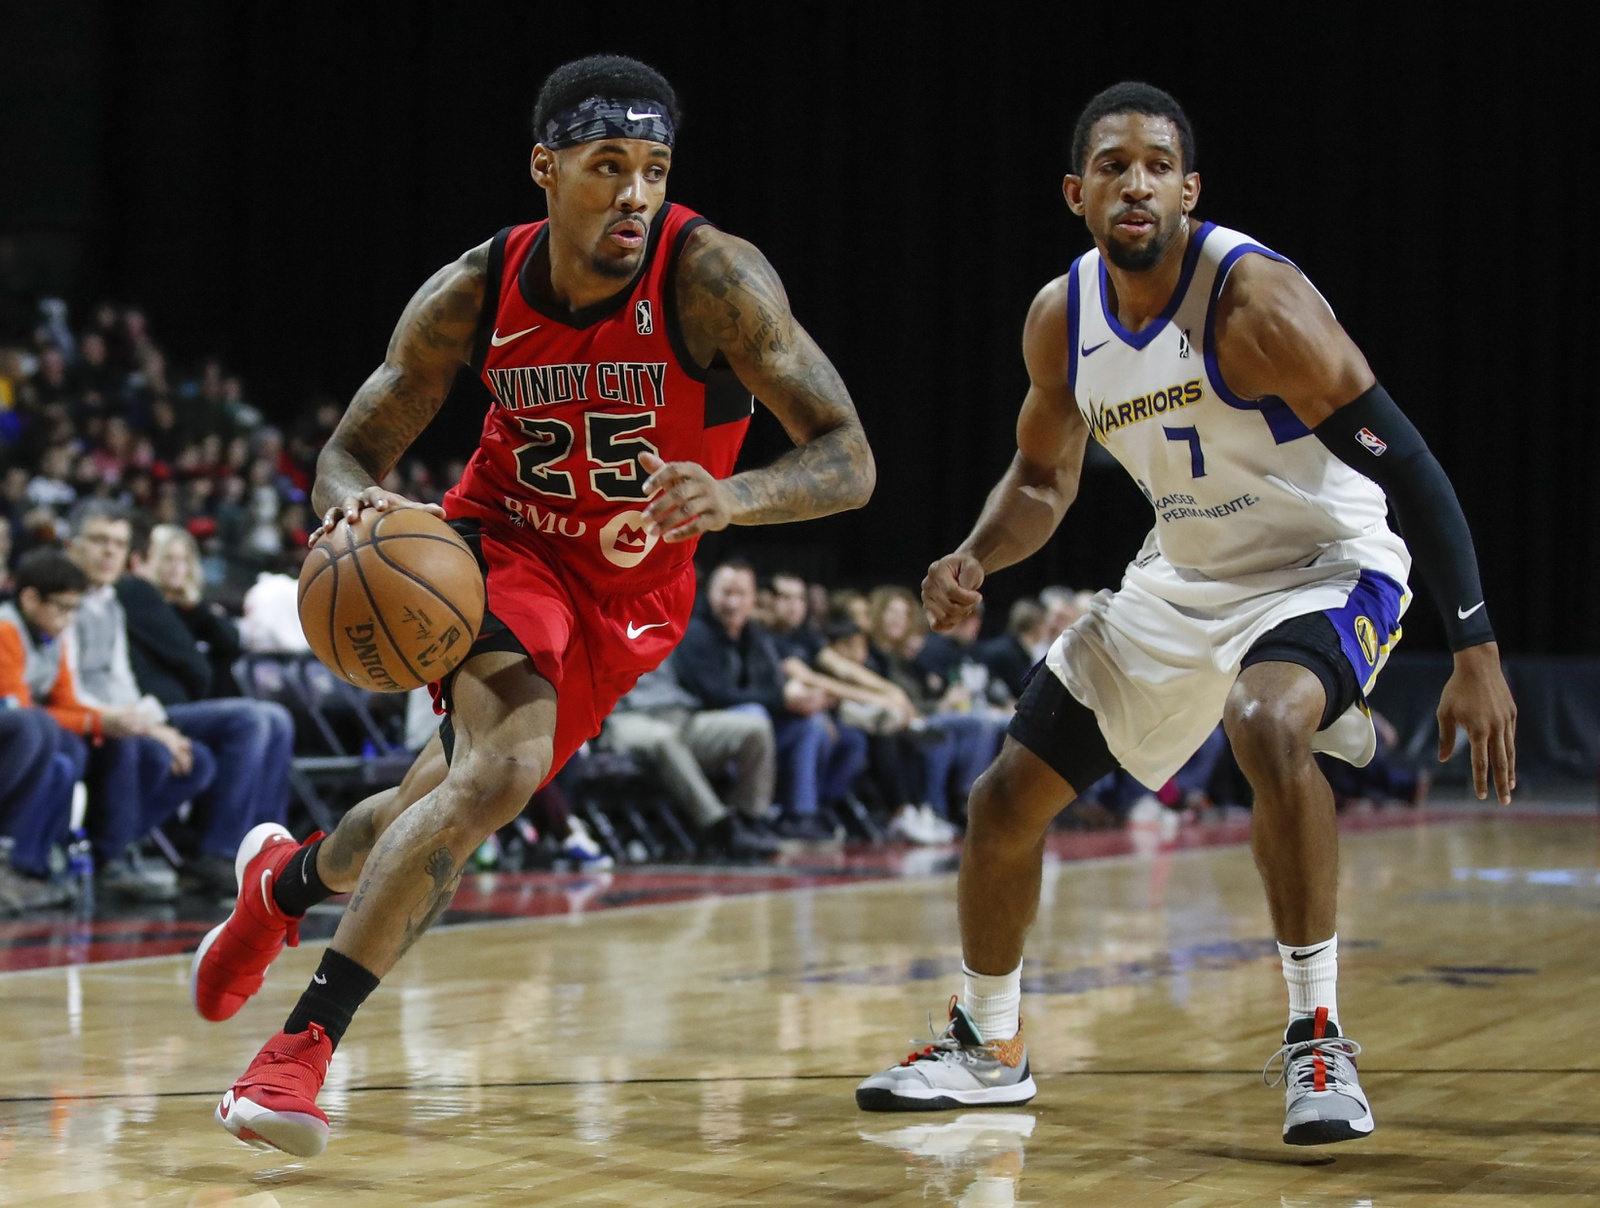 Walter Lemon Jr. #25 of the Windy City Bulls handles the ball against the Santa Cruz Warriors during the NBA G League on March 3, 2019 at Sears Centre Arena in Hoffman Estates, Illinois.